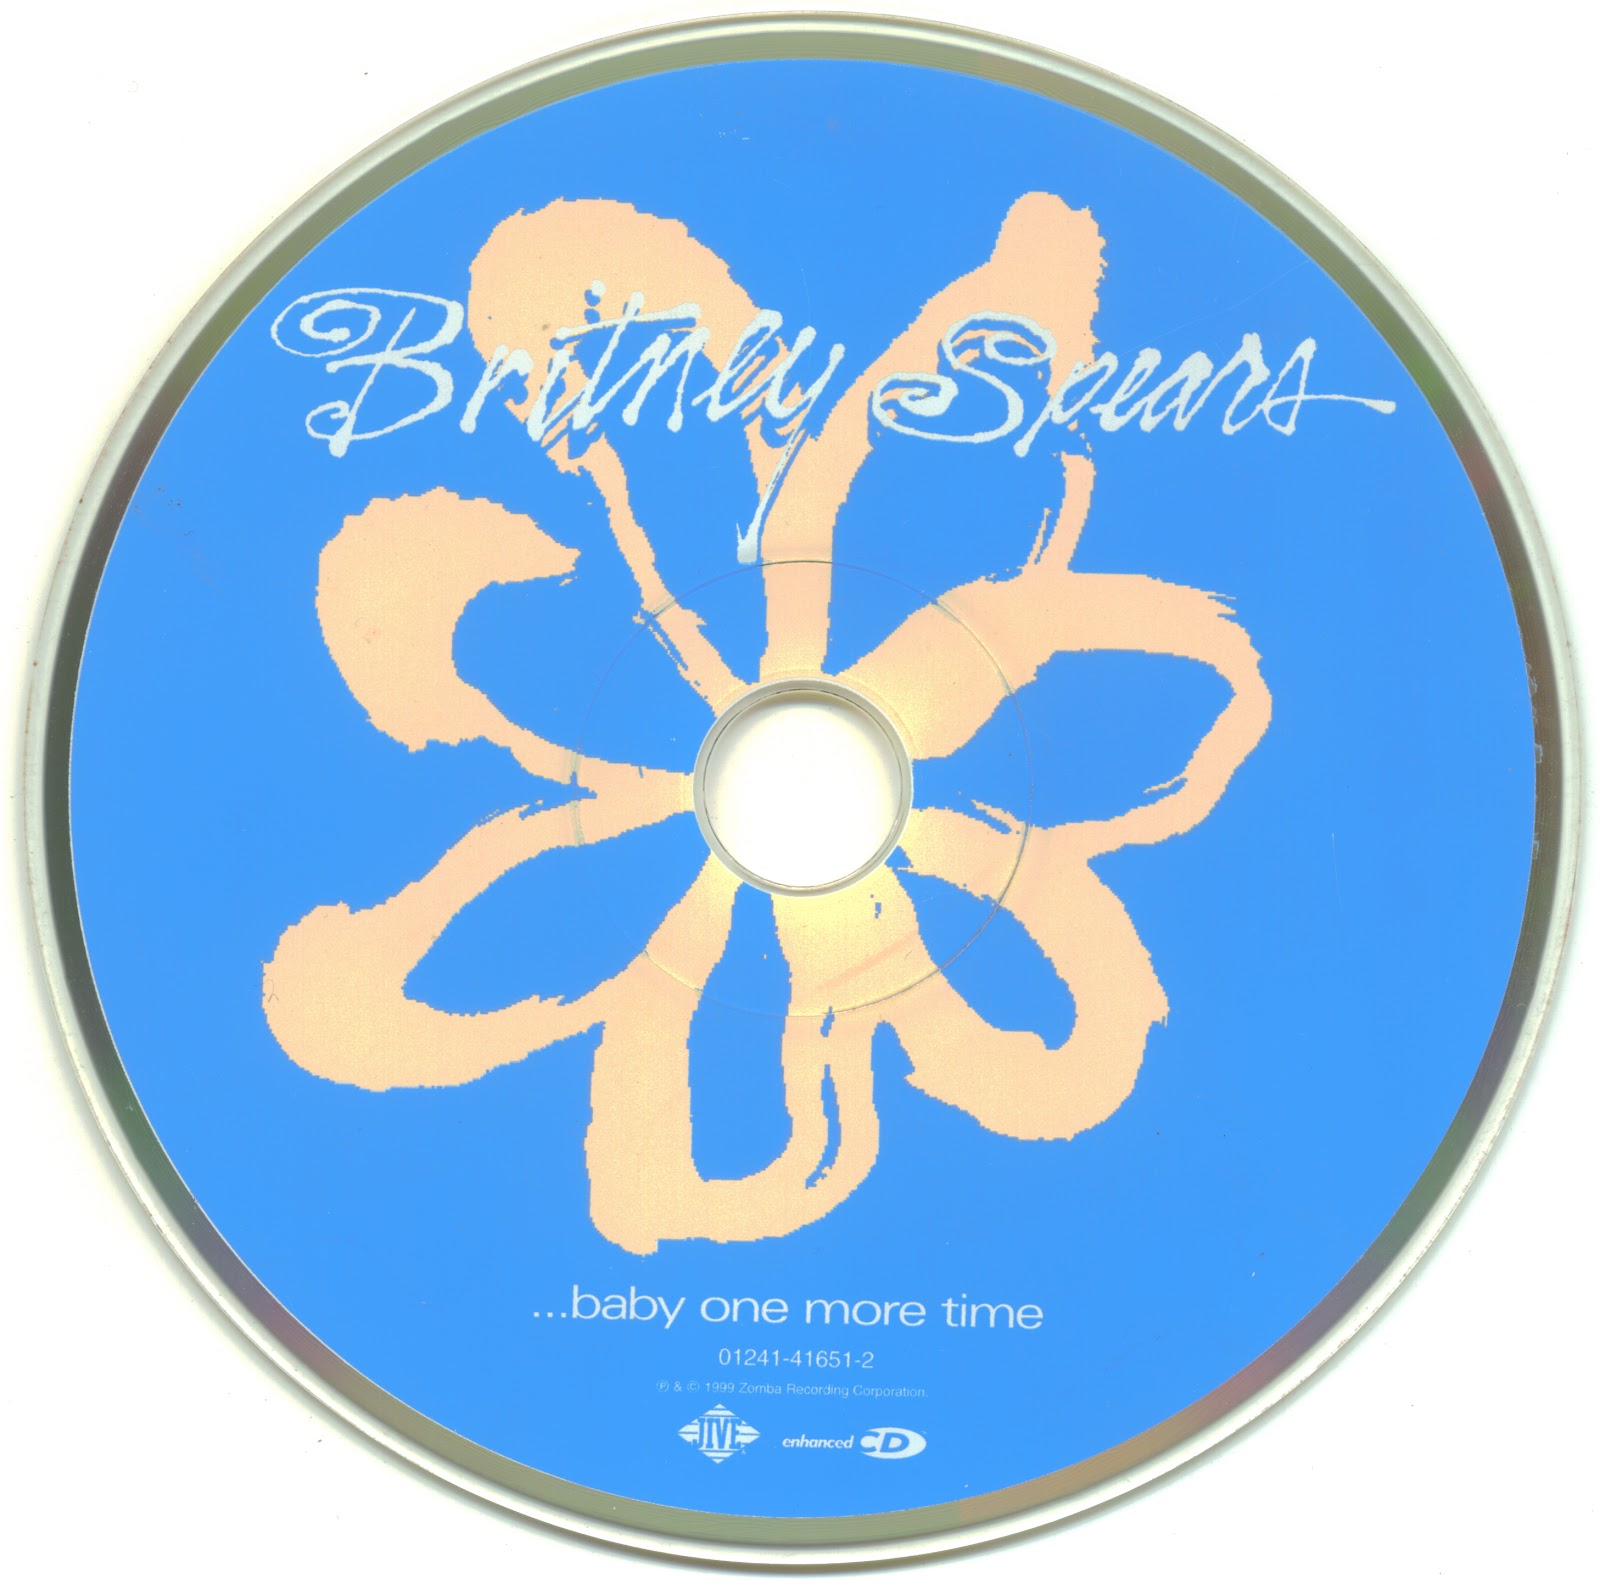 Britney Spears Baby One More Time Music Cd: POP 'TIL YOU PUKE!: Britney Spears